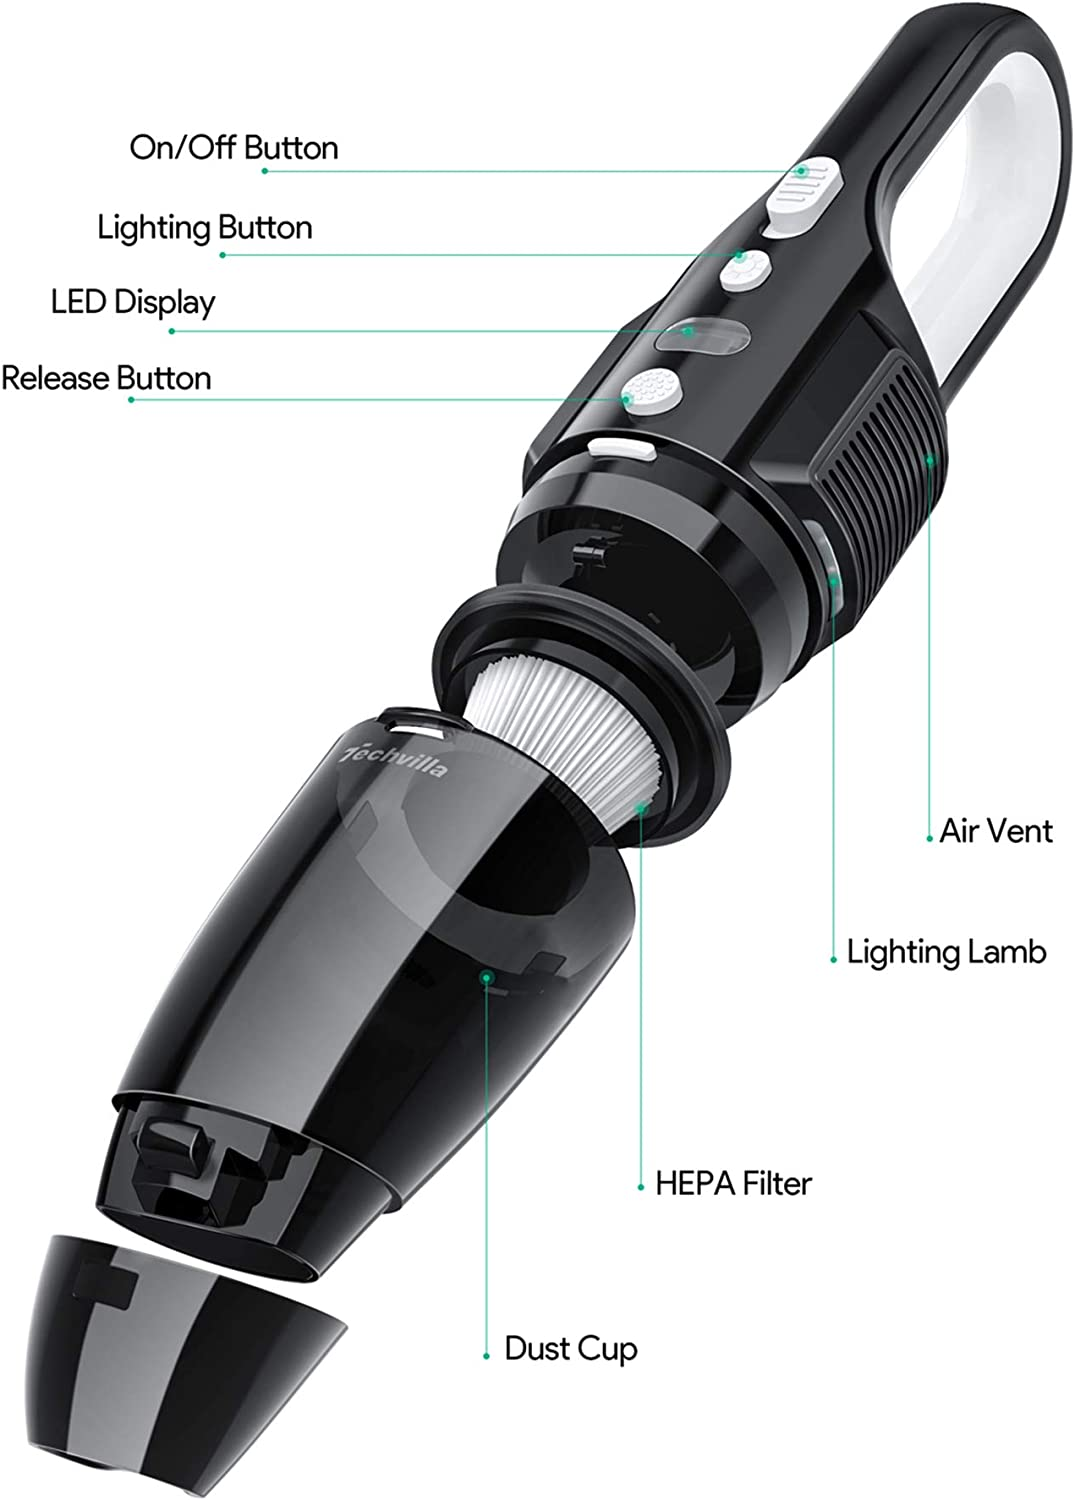 Vacuum Cleaner Techvilla Handheld Car Vacuum Cleaner with 6KPa Strong Suction and 120W High Power Portable Cordless Vacuum with LED Light and 2200mAh Rechargeable Lithium for Dry /& Wet Use